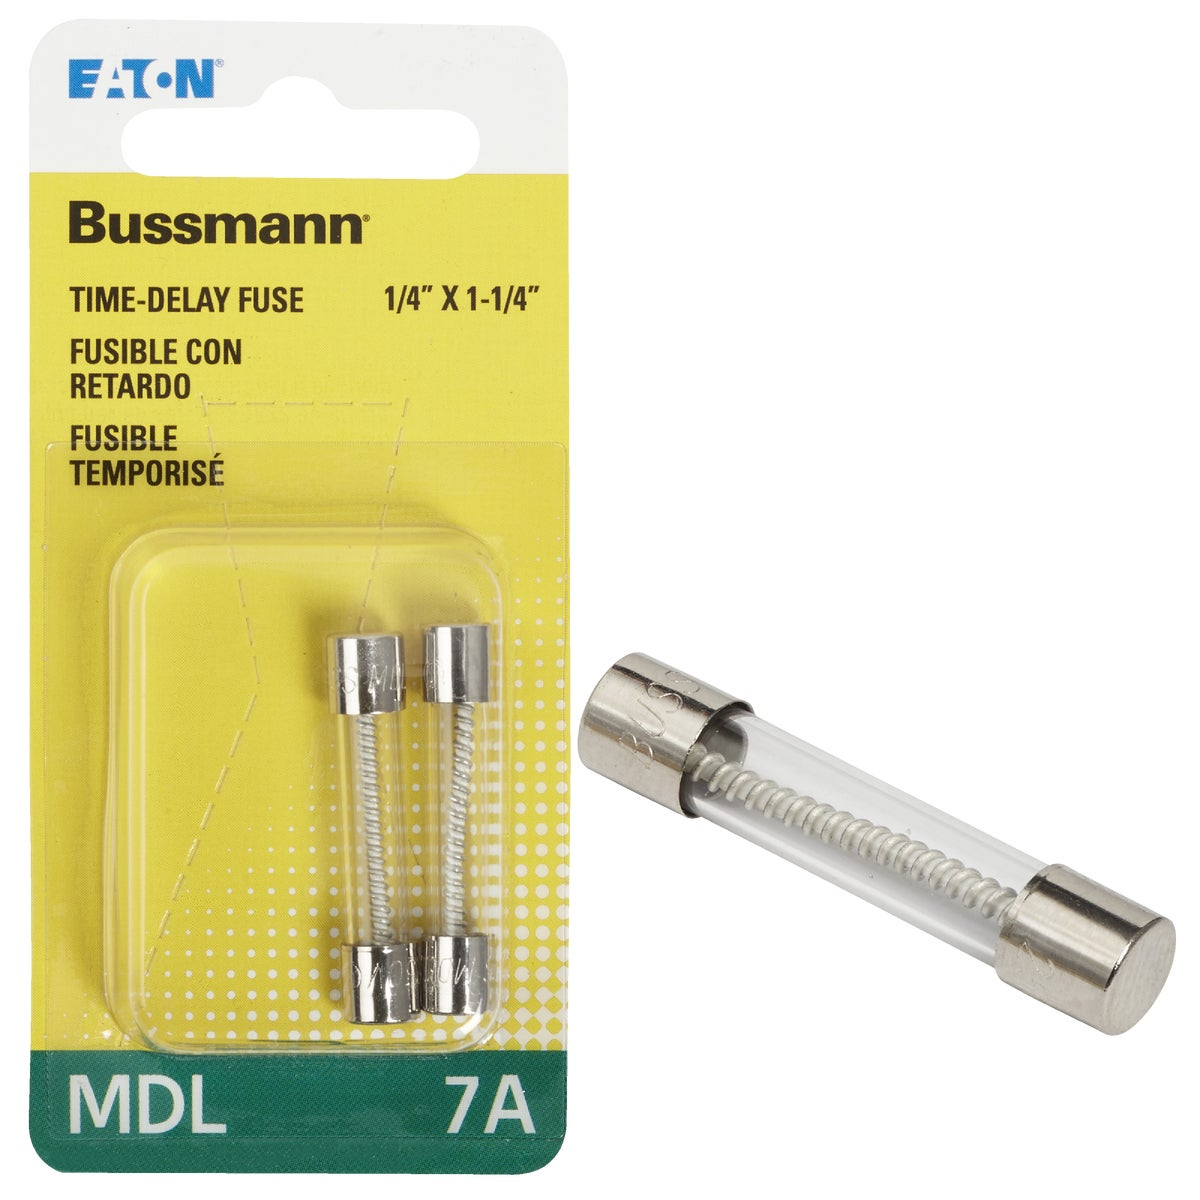 7A ELECTRONIC FUSE - BP/MDL-7 by Bussmann Cooper